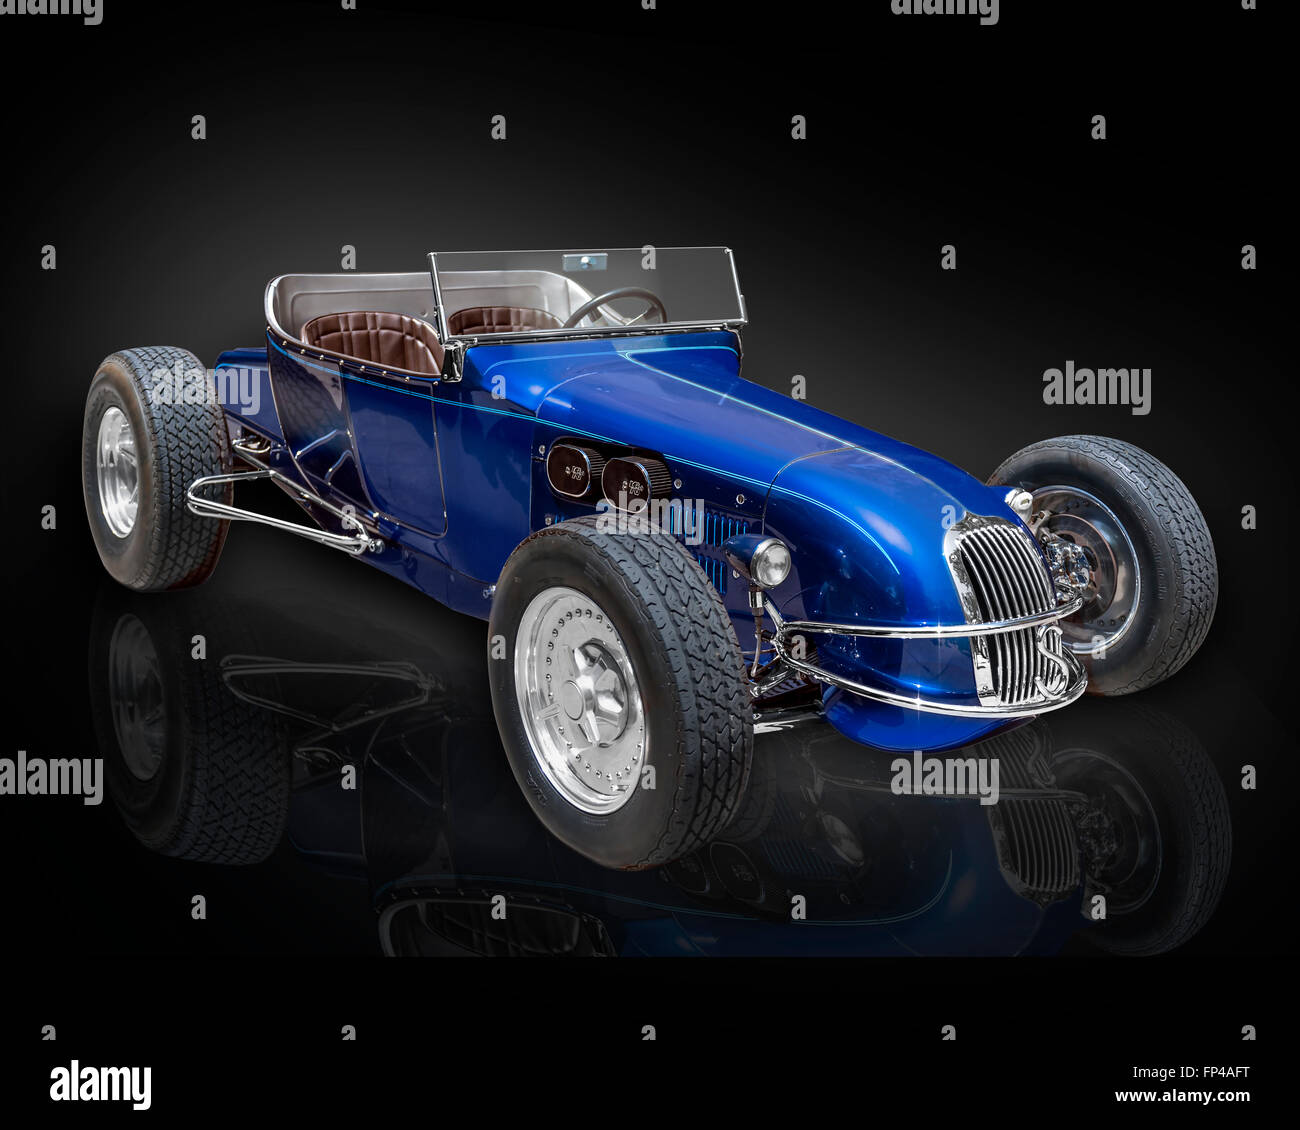 A Model T Ford track roadster Hot rod photographed on a black background with reflection - Stock Image